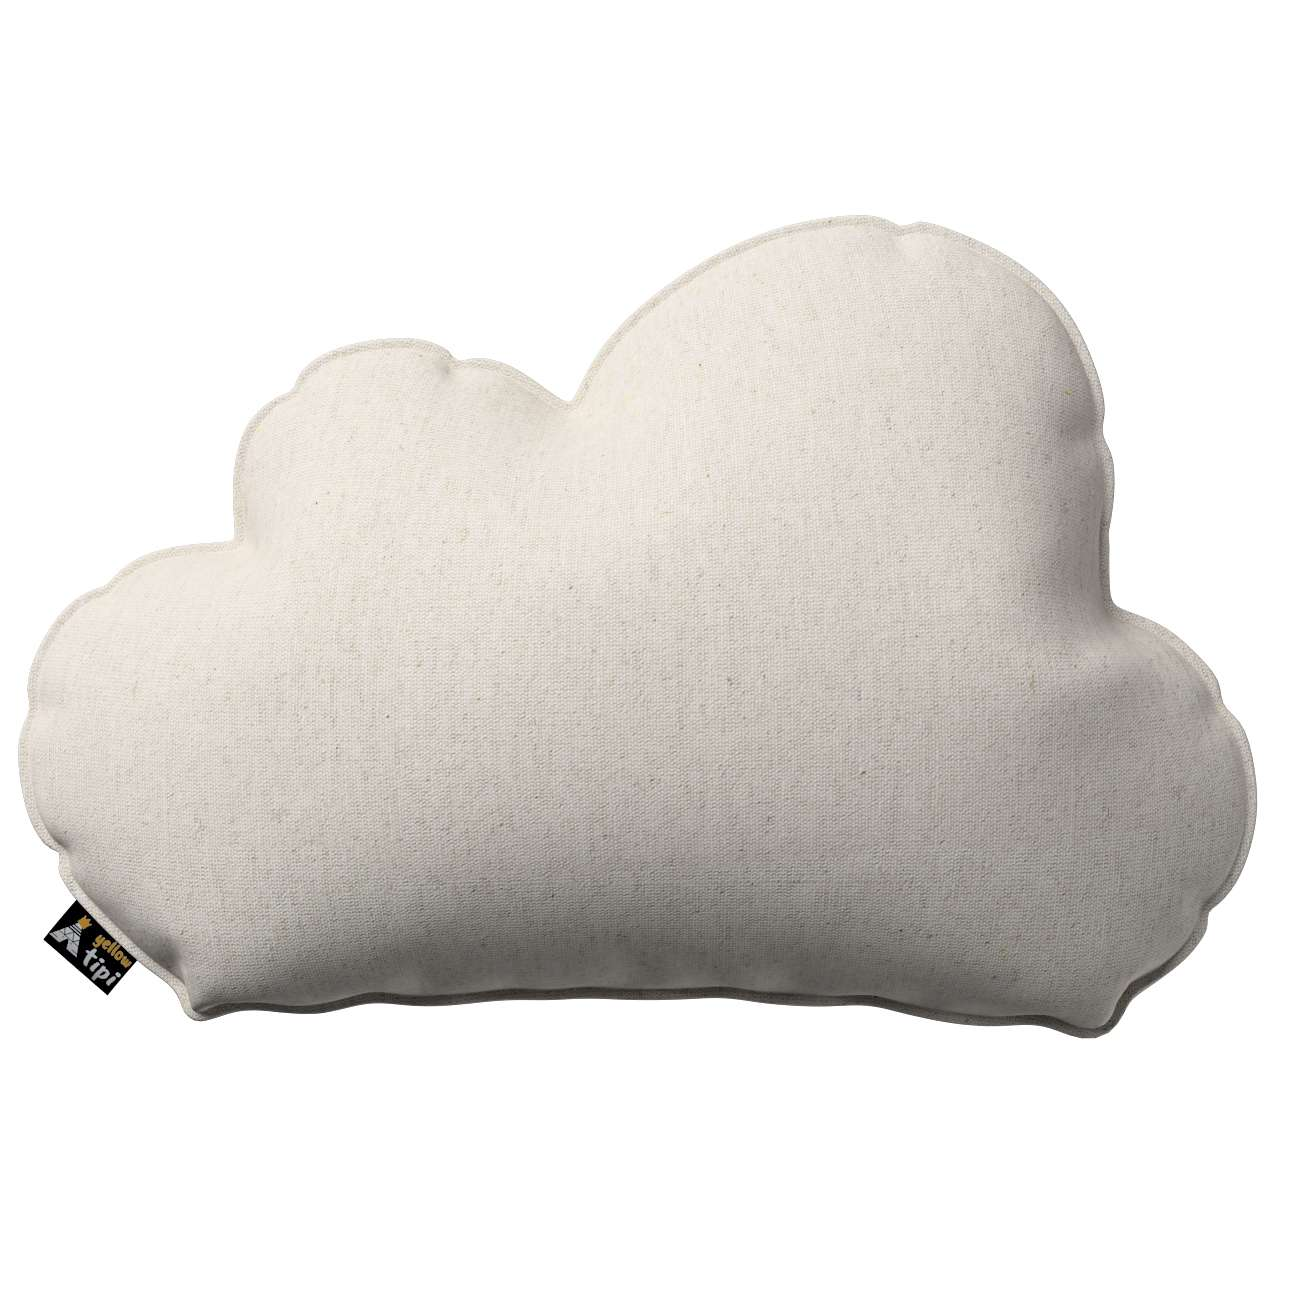 Soft Cloud pillow in collection Happiness, fabric: 133-65